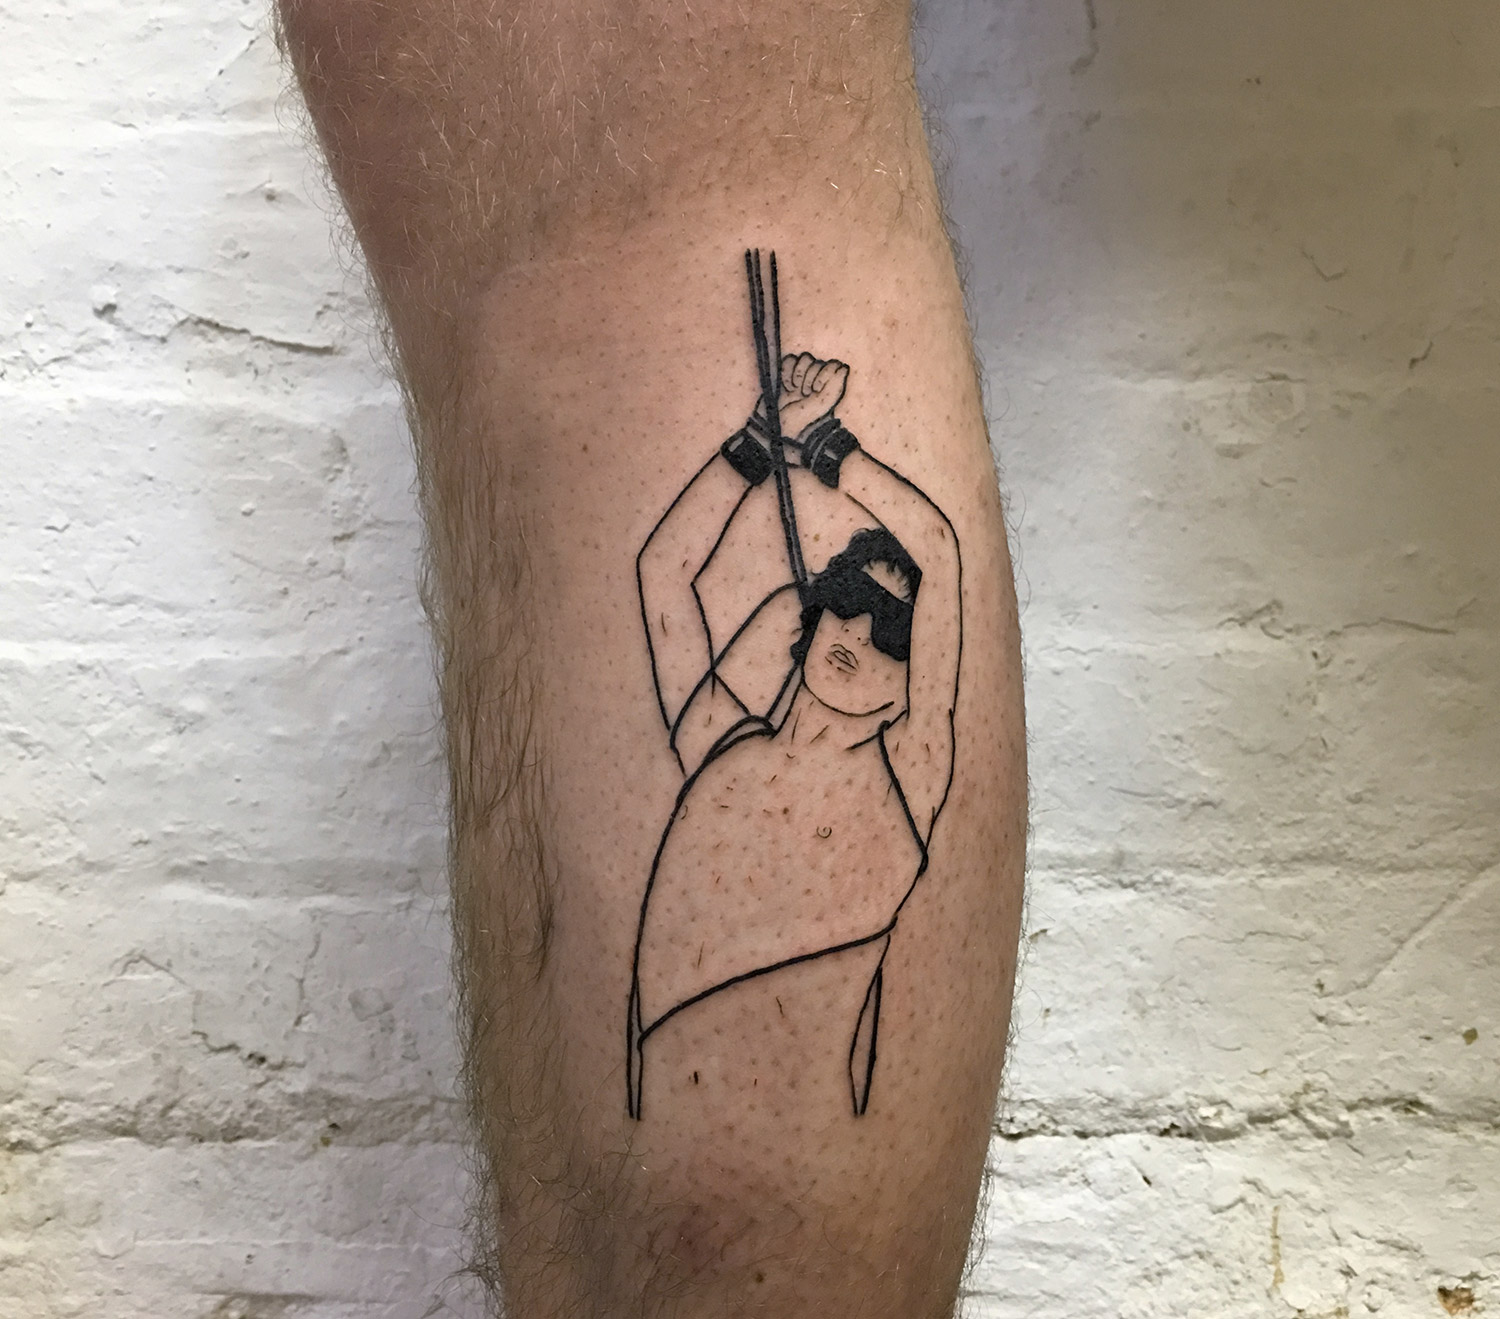 Adam Traves, Disinhibition - kink tattoo